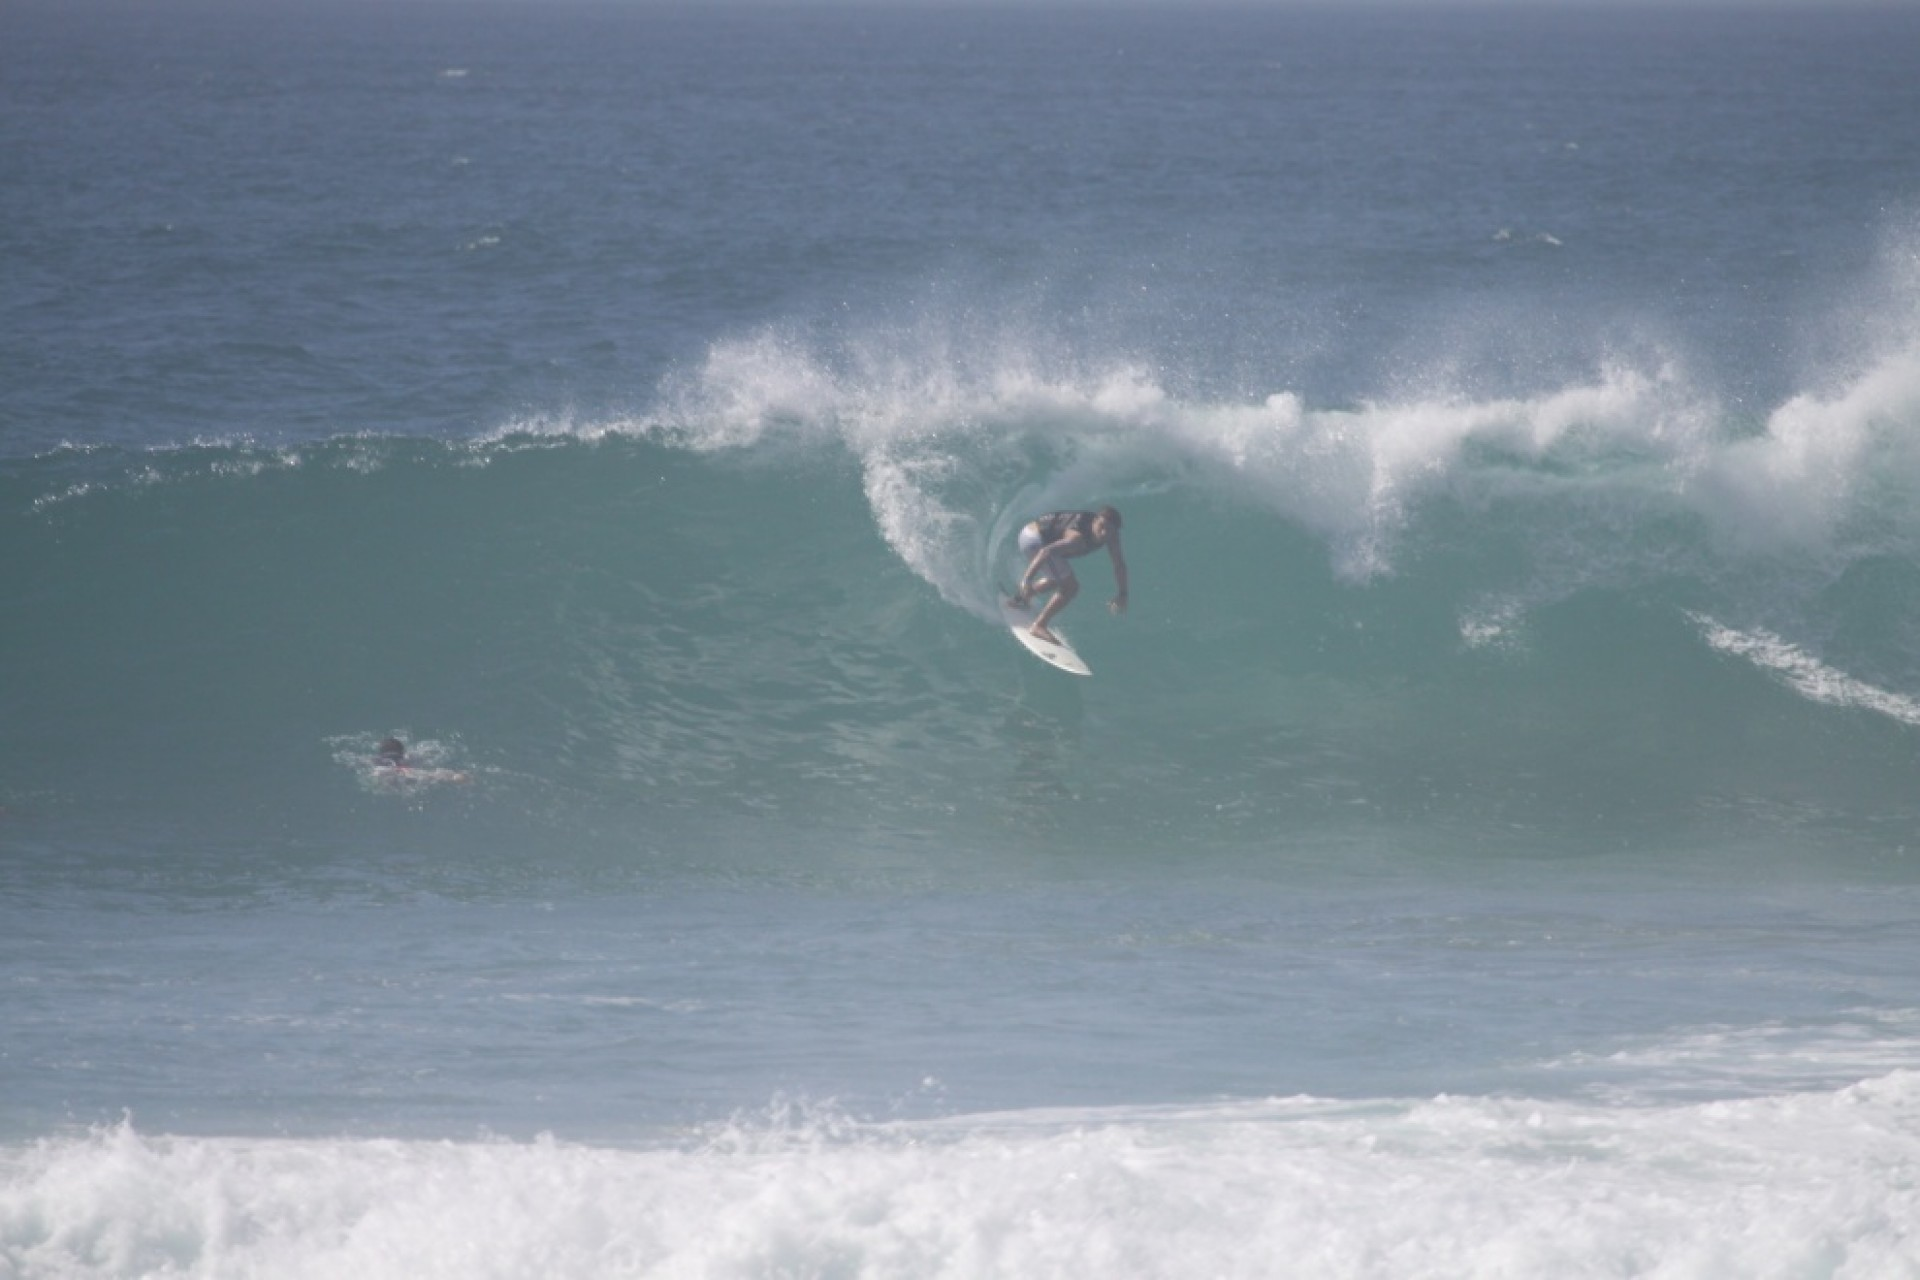 Against The jet's photo of Costa Azul